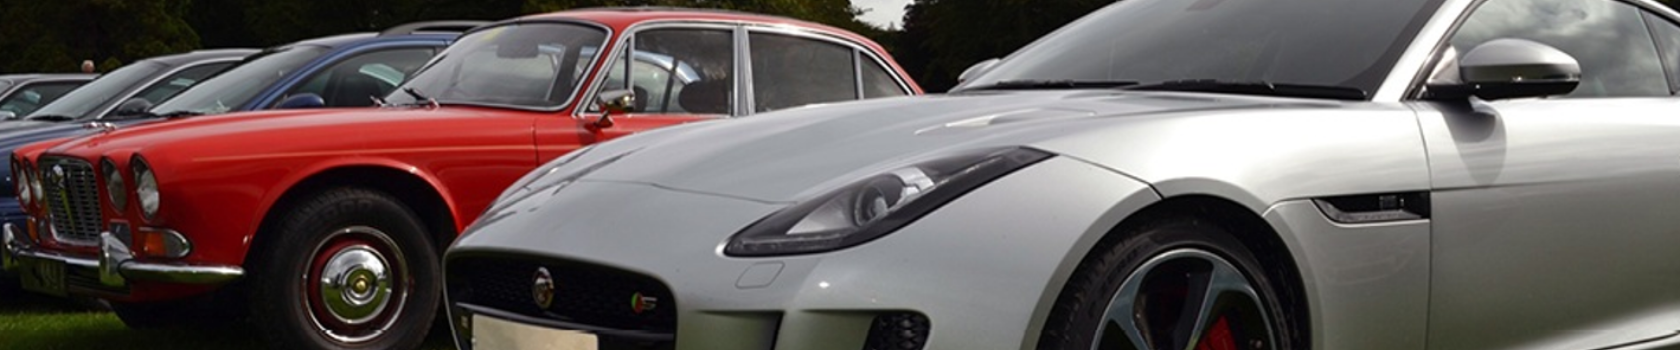 Jec Org Uk Forum New Xk Sports Cars